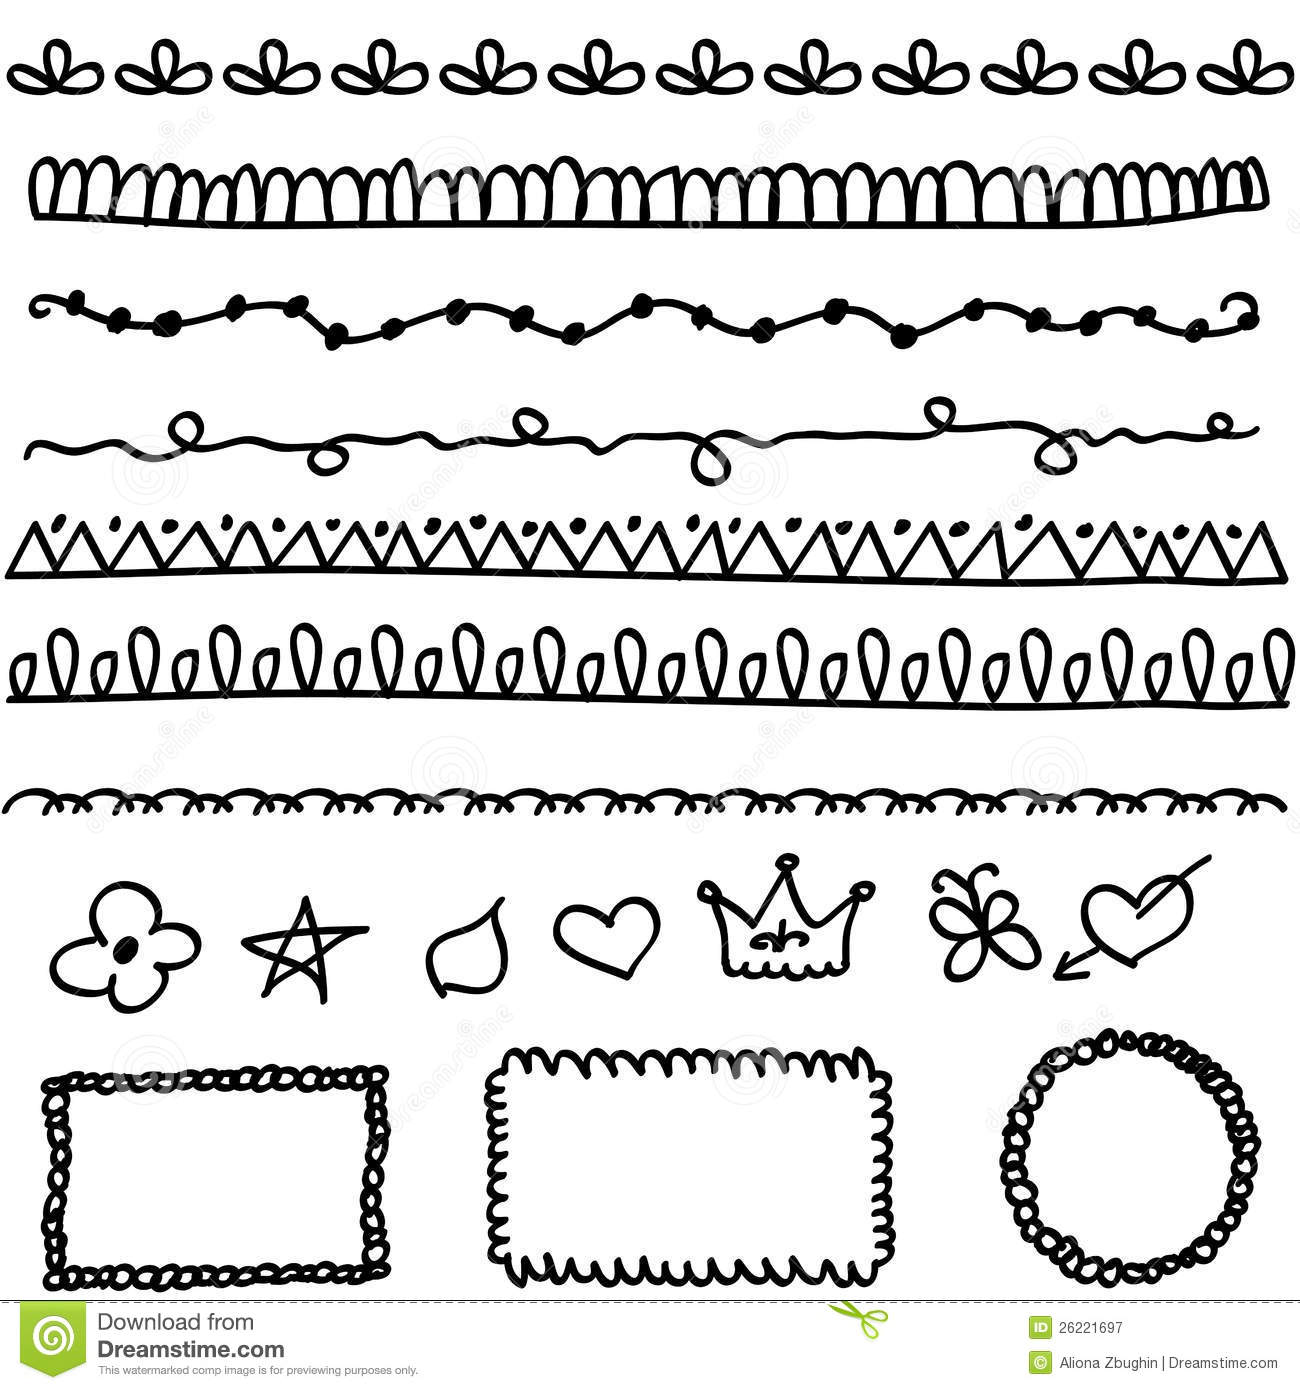 Line Drawing Doodles : Doodle elements stock vector illustration of crowd